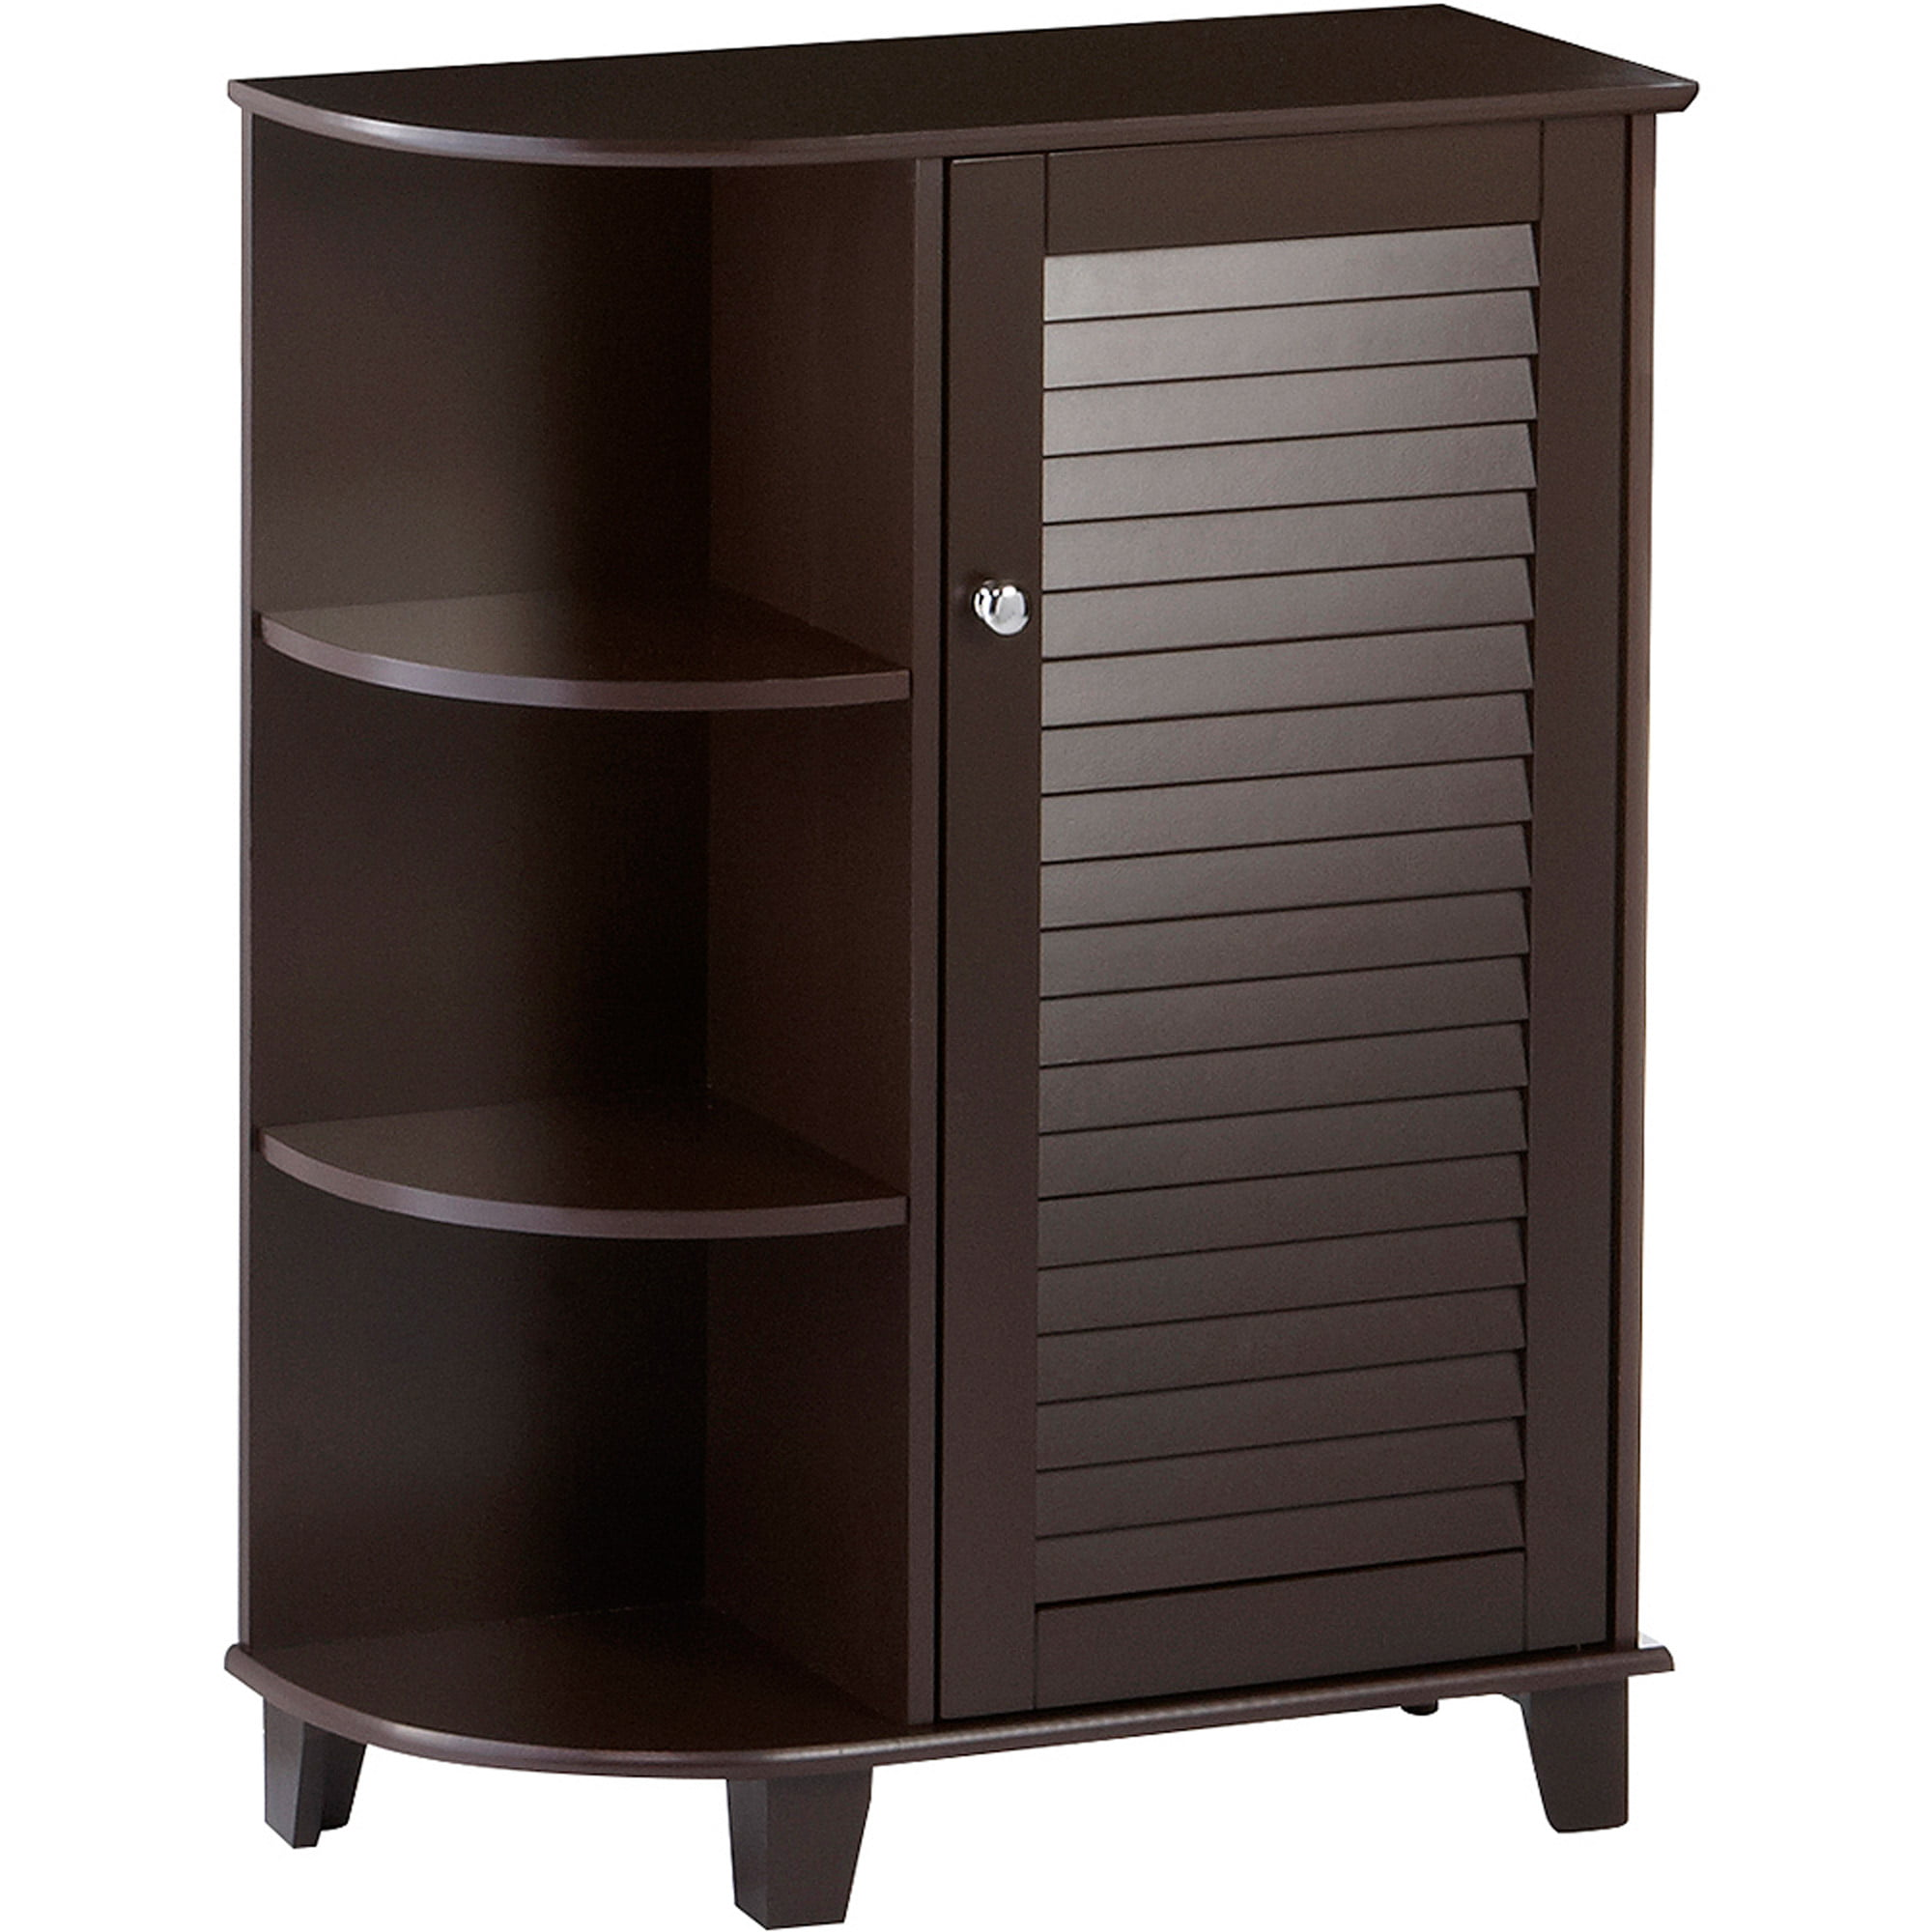 RiverRidge Ellsworth Floor Cabinet With Side Shelves, Espresso   Walmart.com